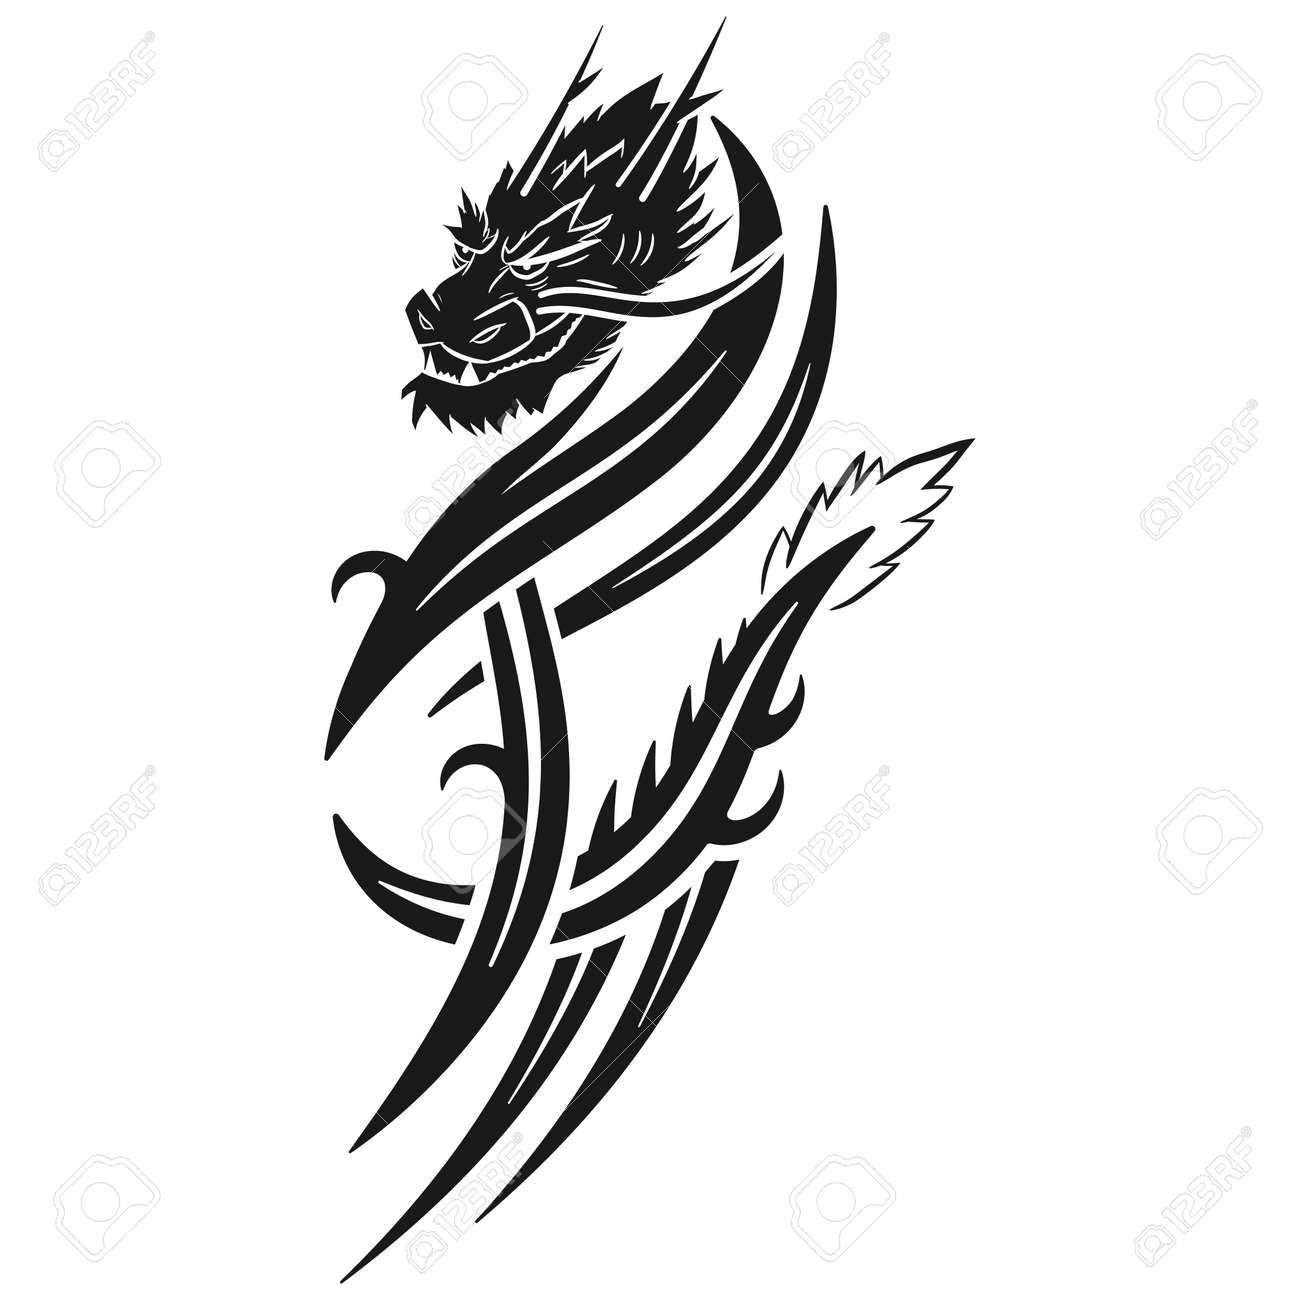 Dragon tribal tattoo vector illustration isolated on a white background. - 172747062